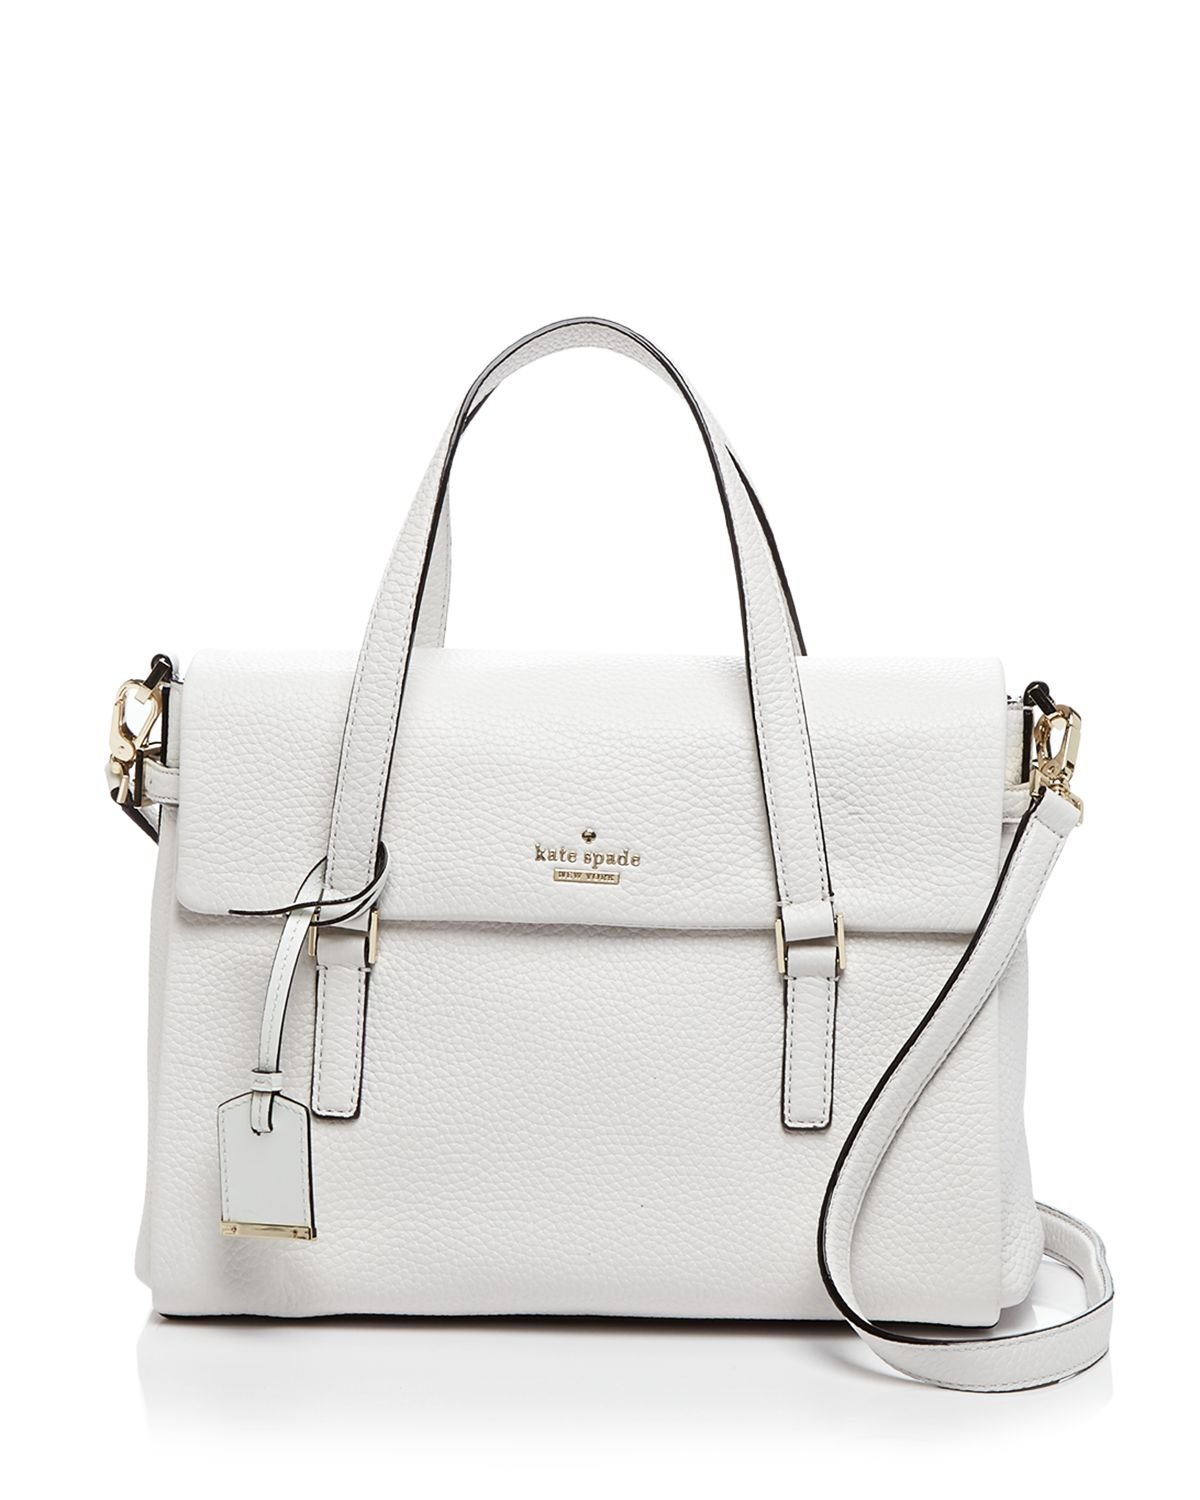 Kate spade new york Shoulder Bag - Holden Street Small Leslie in ...